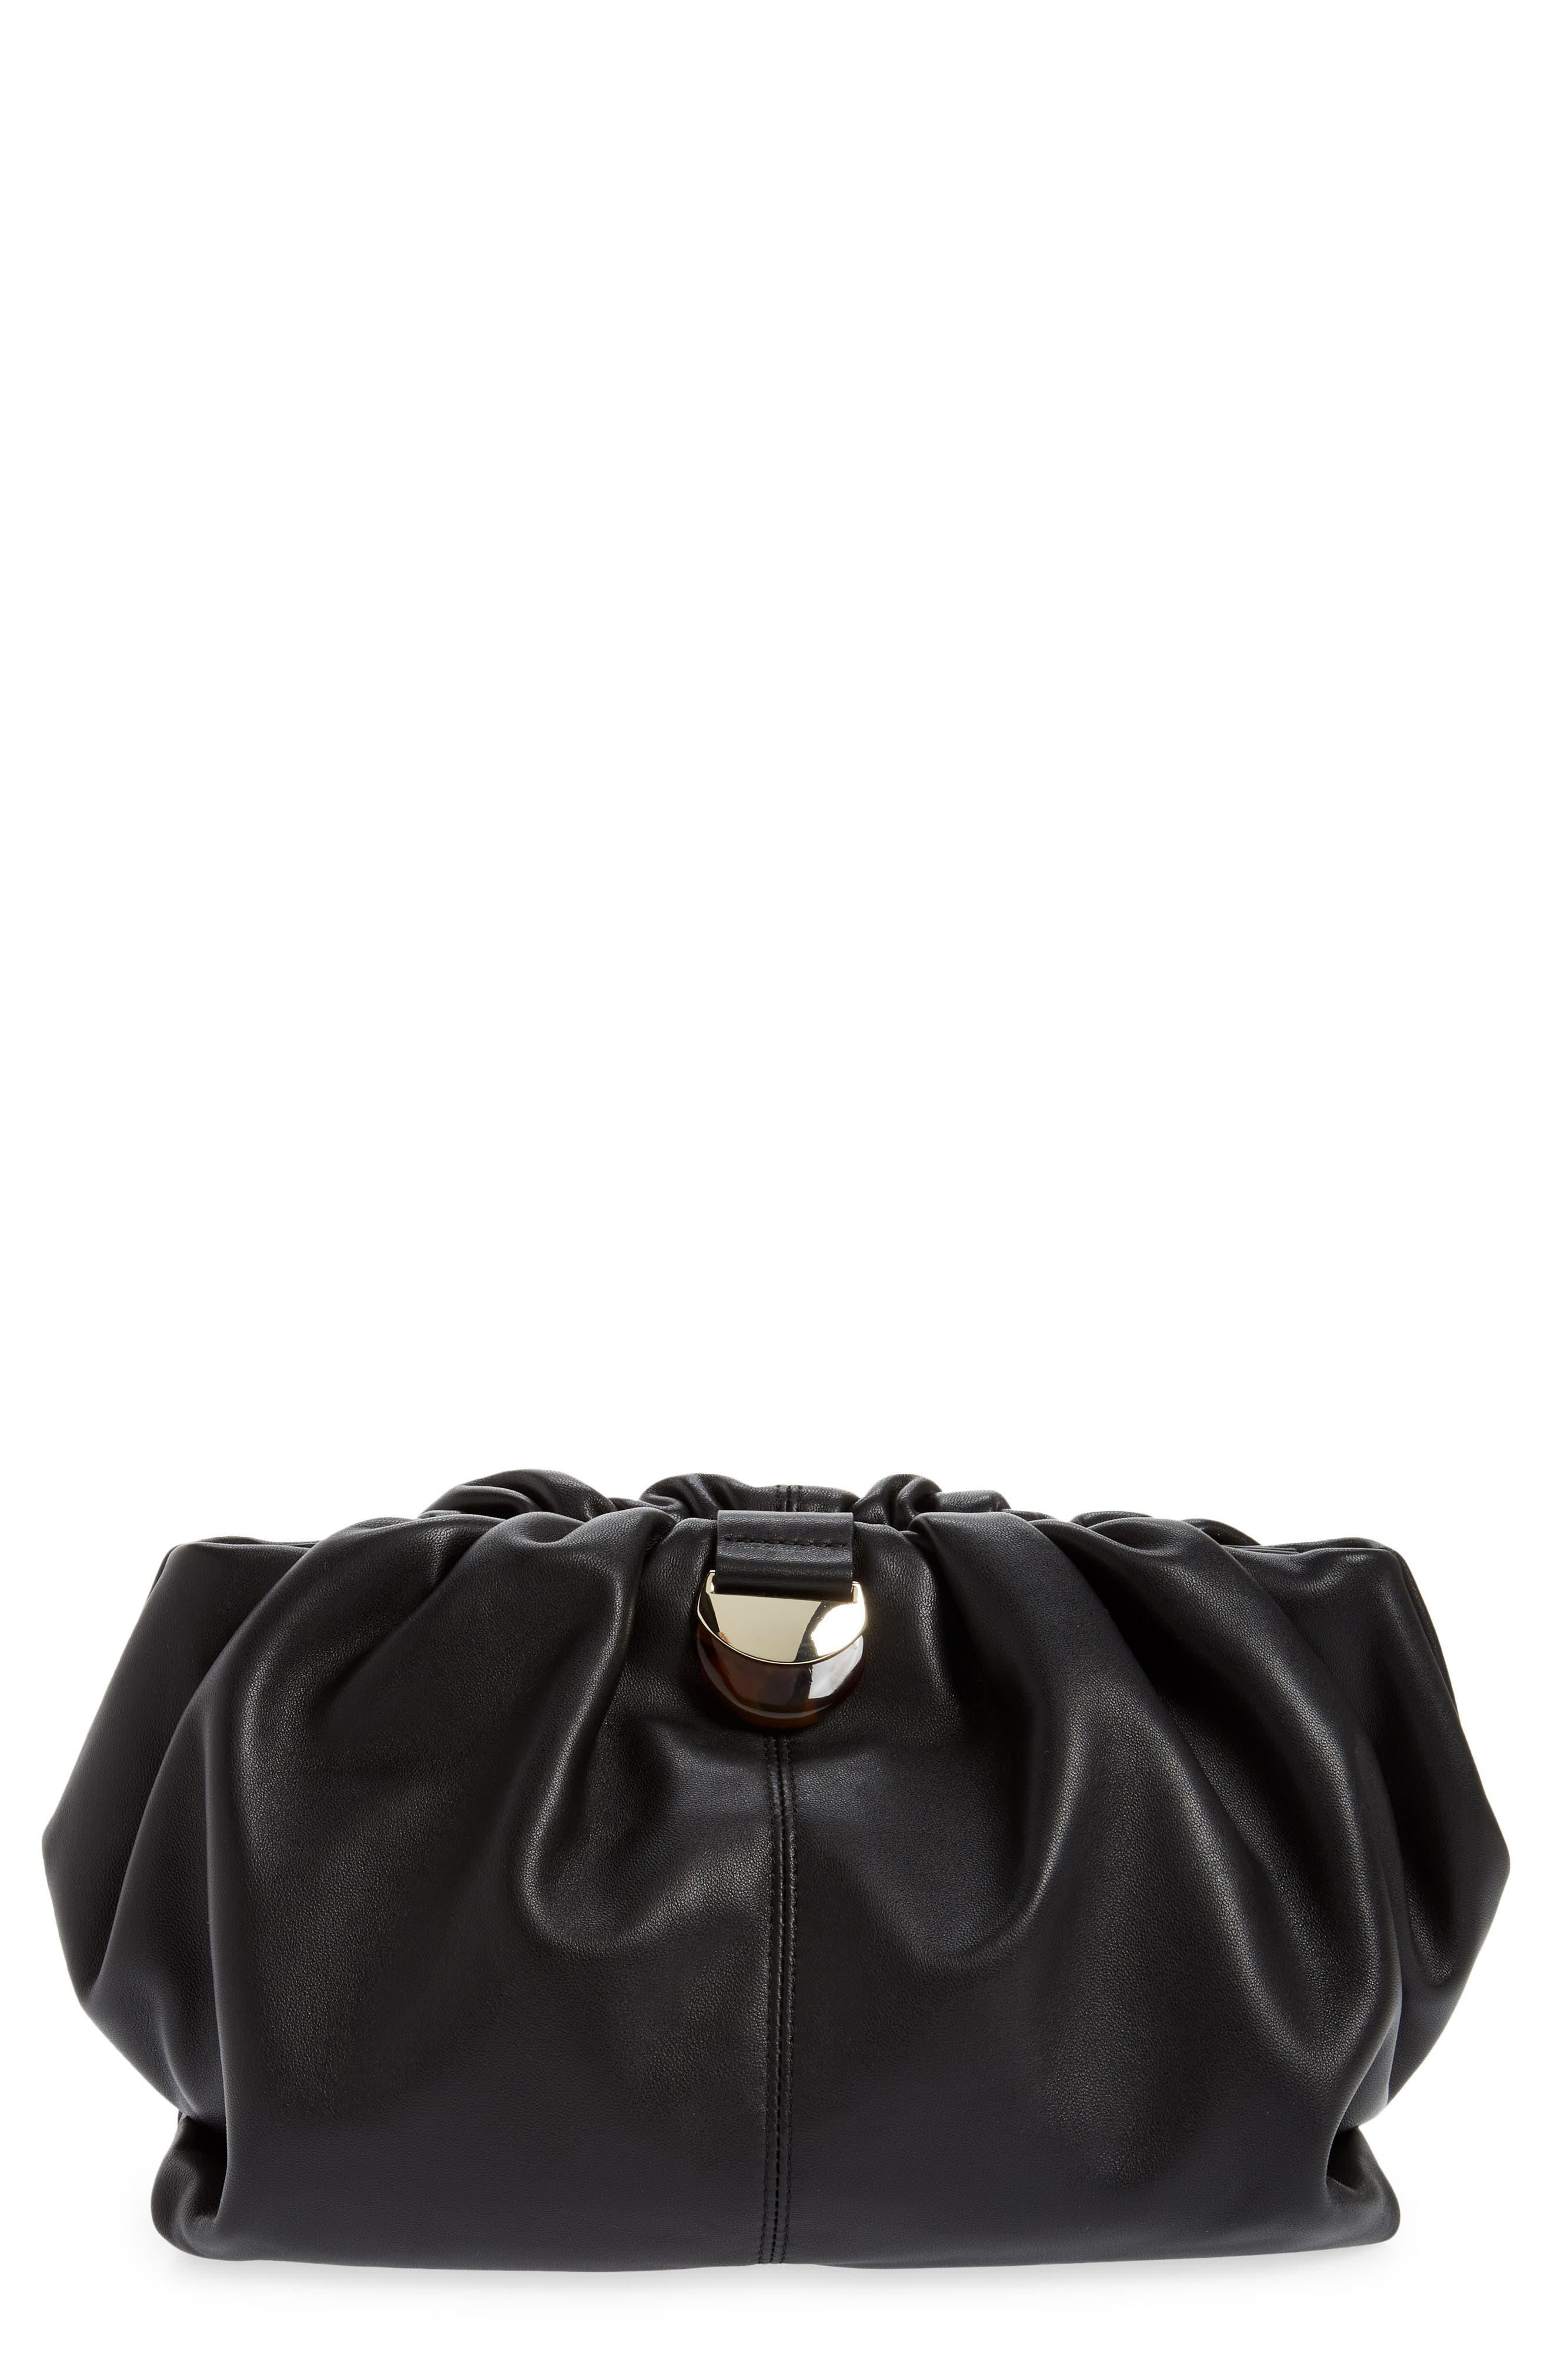 Analeigh Oversize Leather Clutch